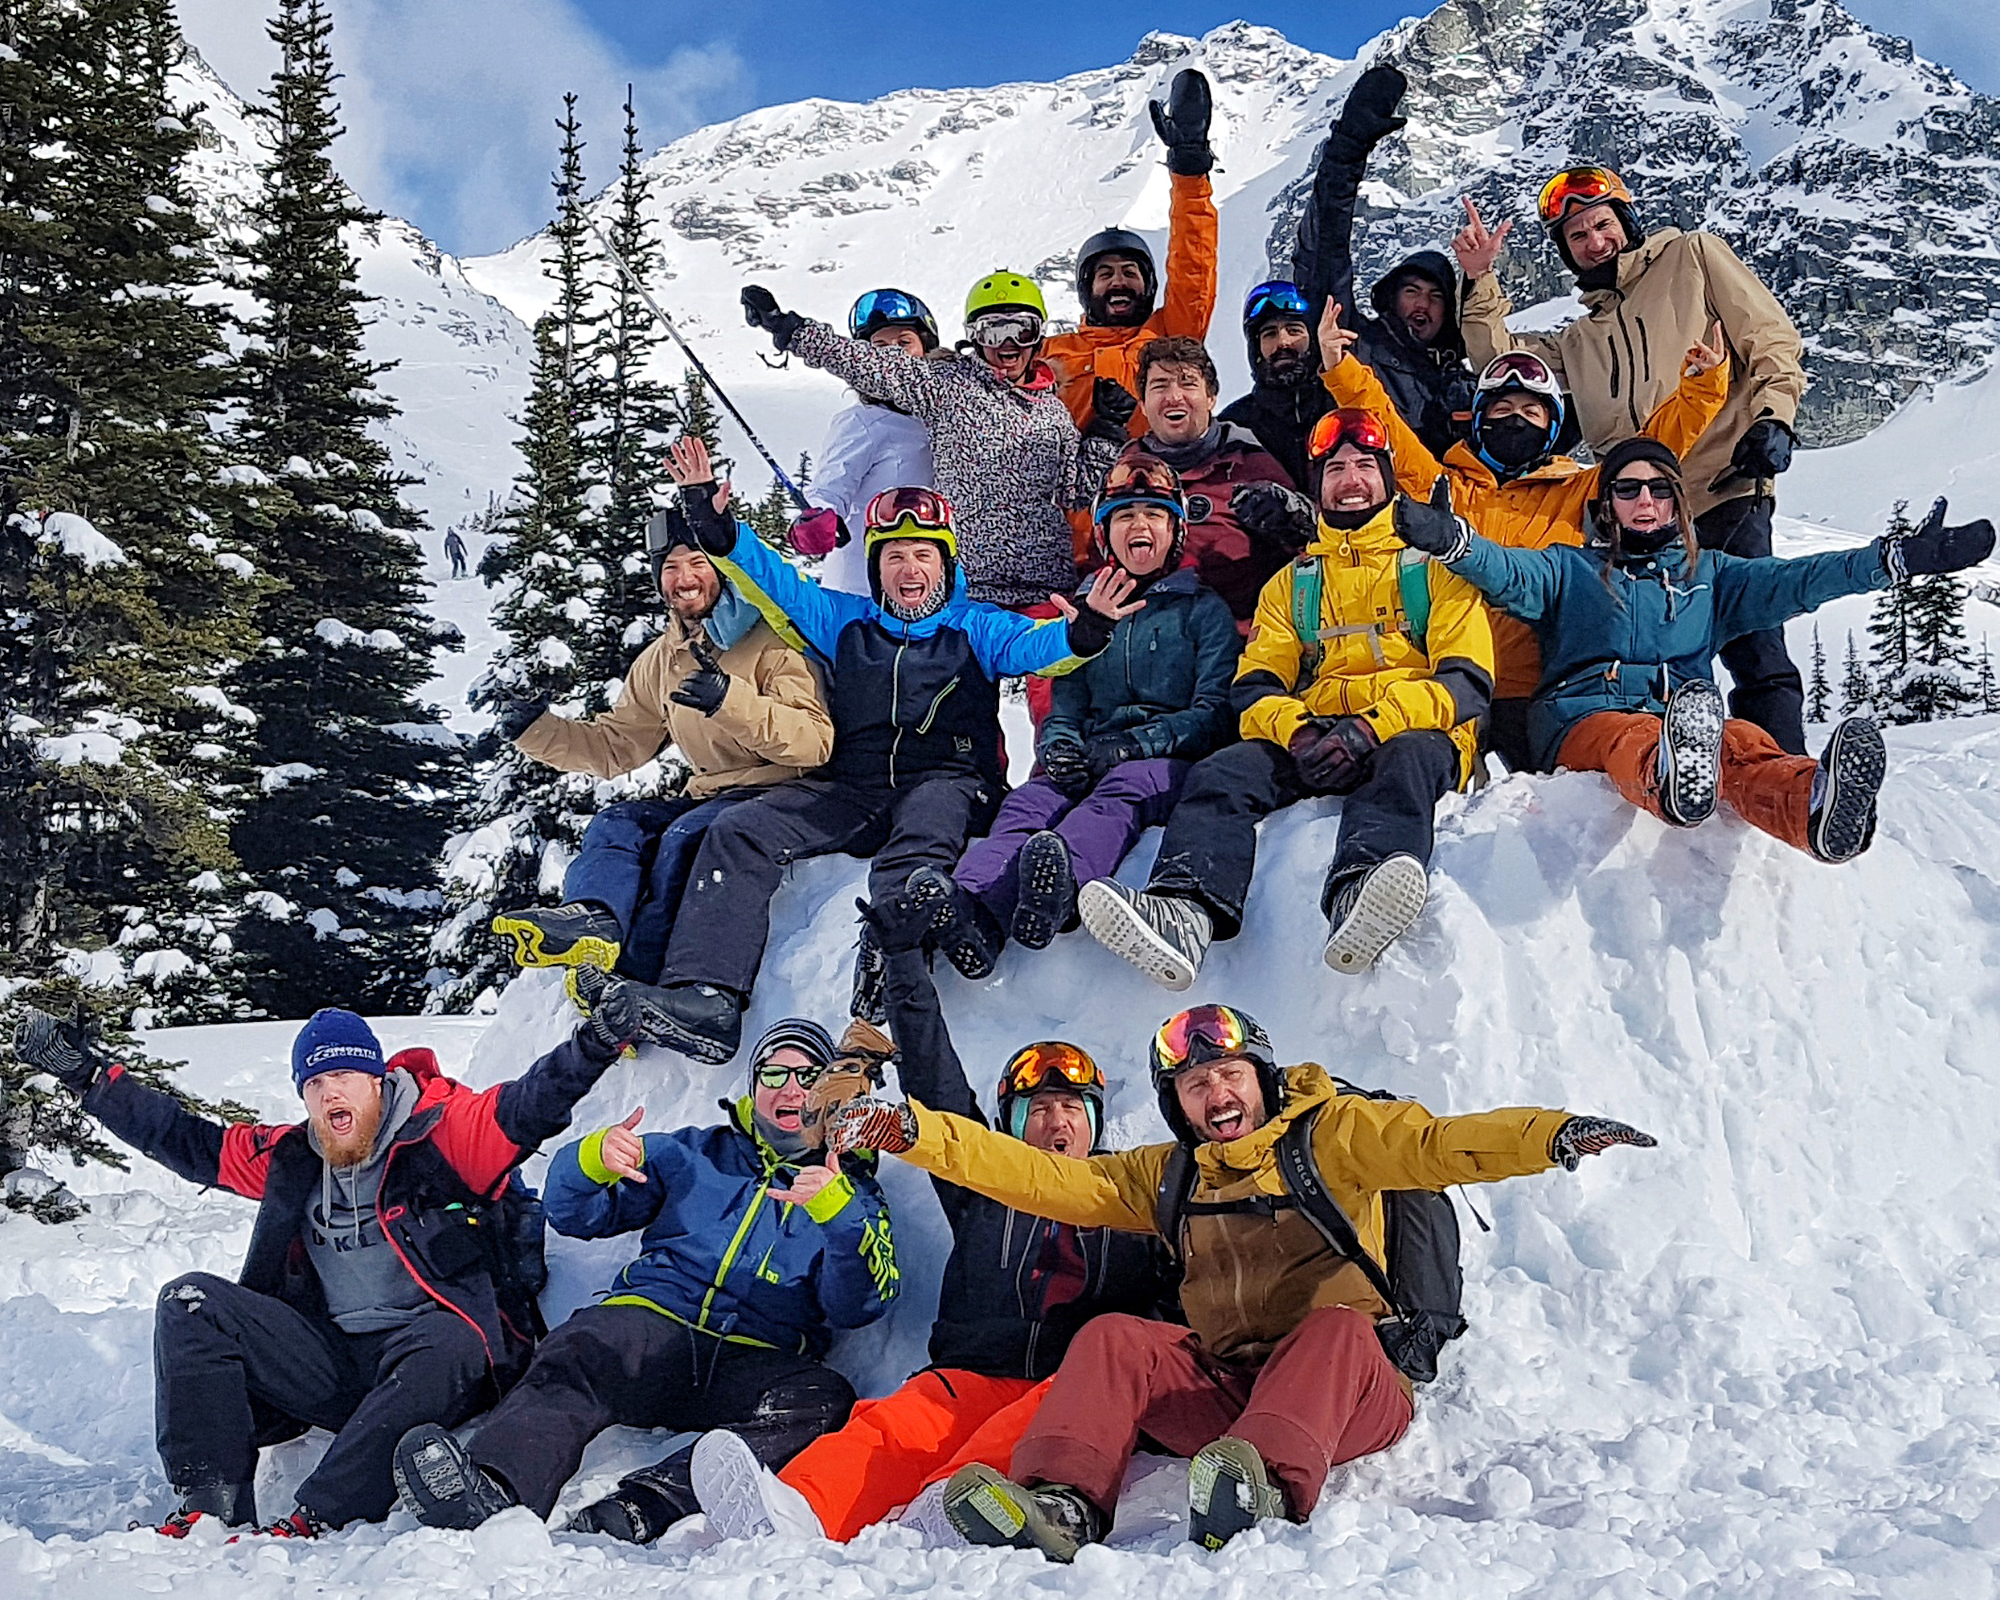 Freeride Snowboard Camp Whistler Canada Group Friends